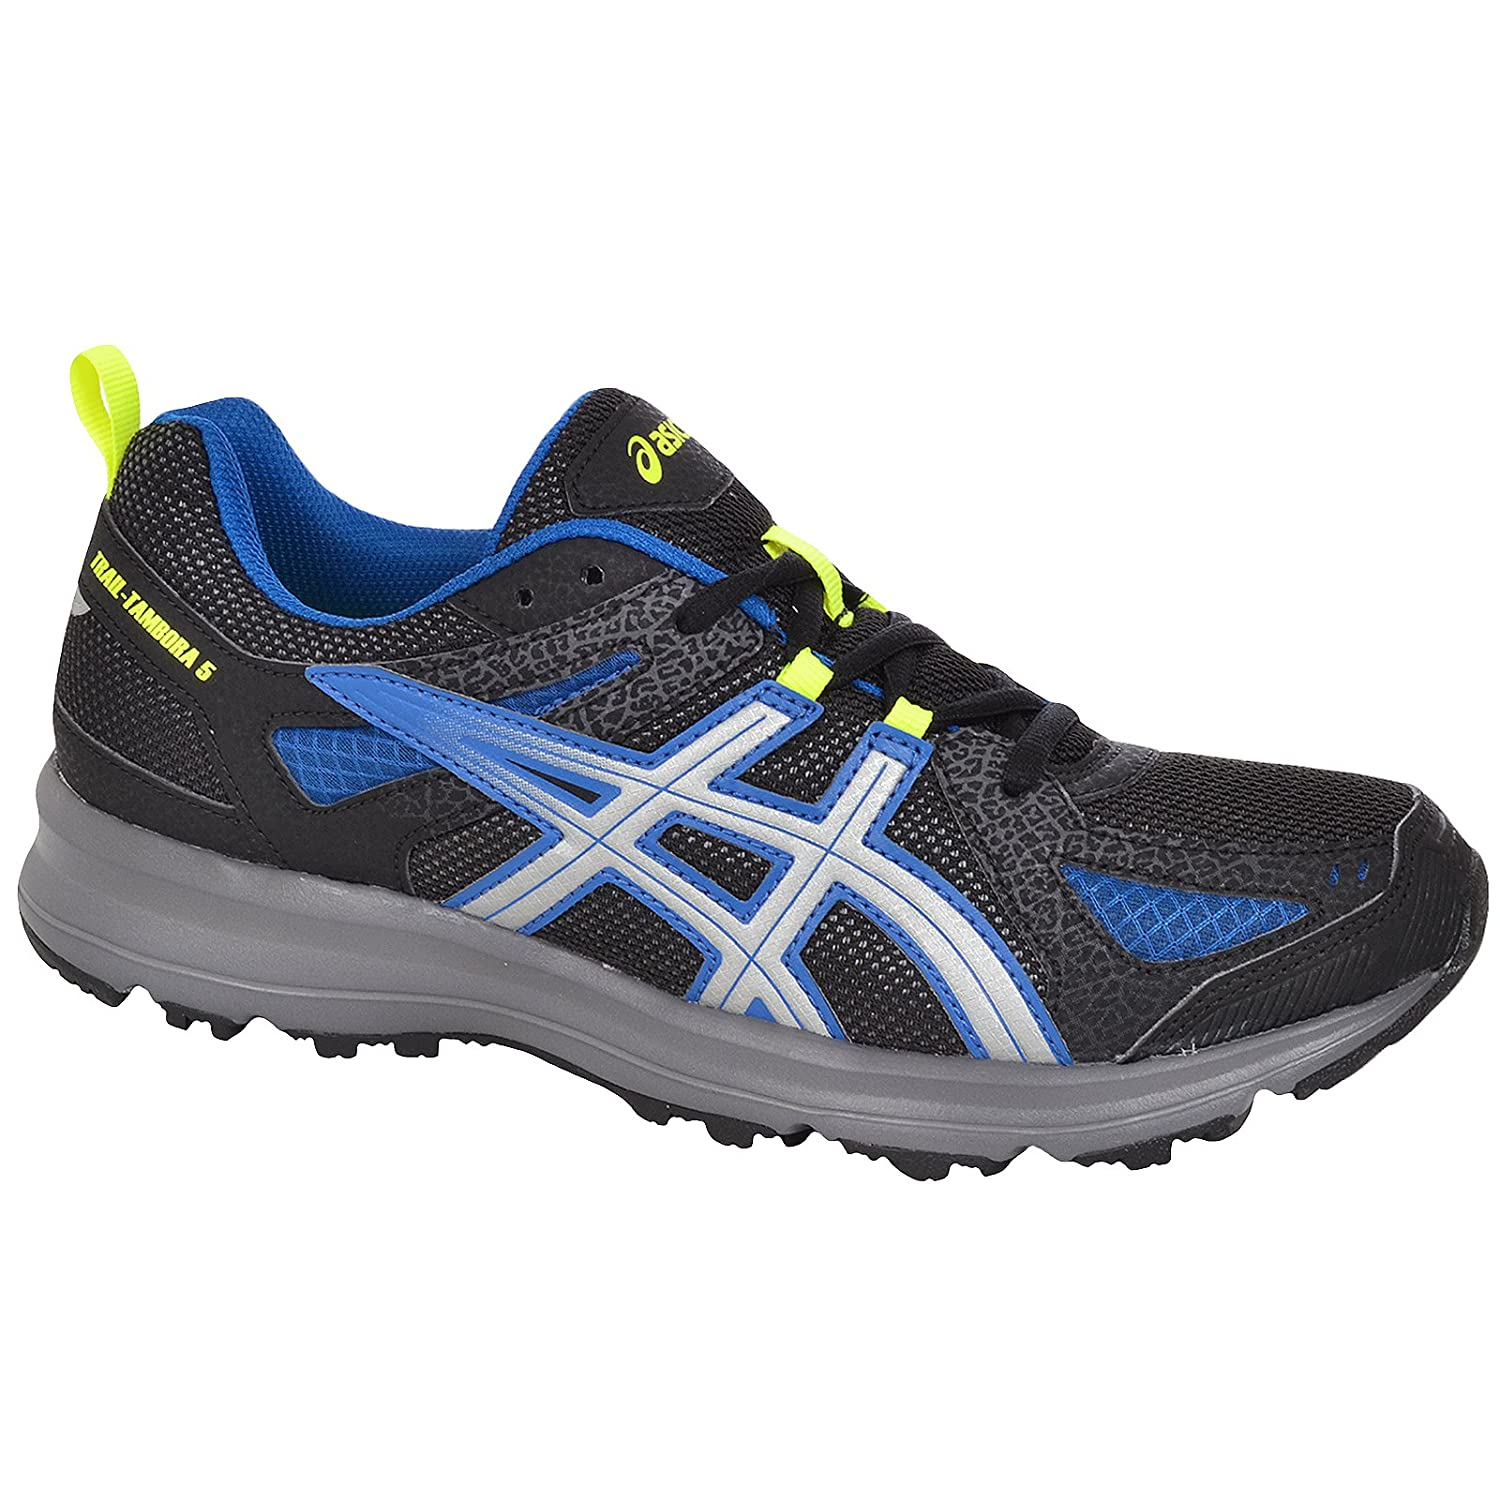 ASICS Trail-Tambora 5 Running Shoes - SS16  Amazon.co.uk  Shoes   Bags 7a5371fcaa91